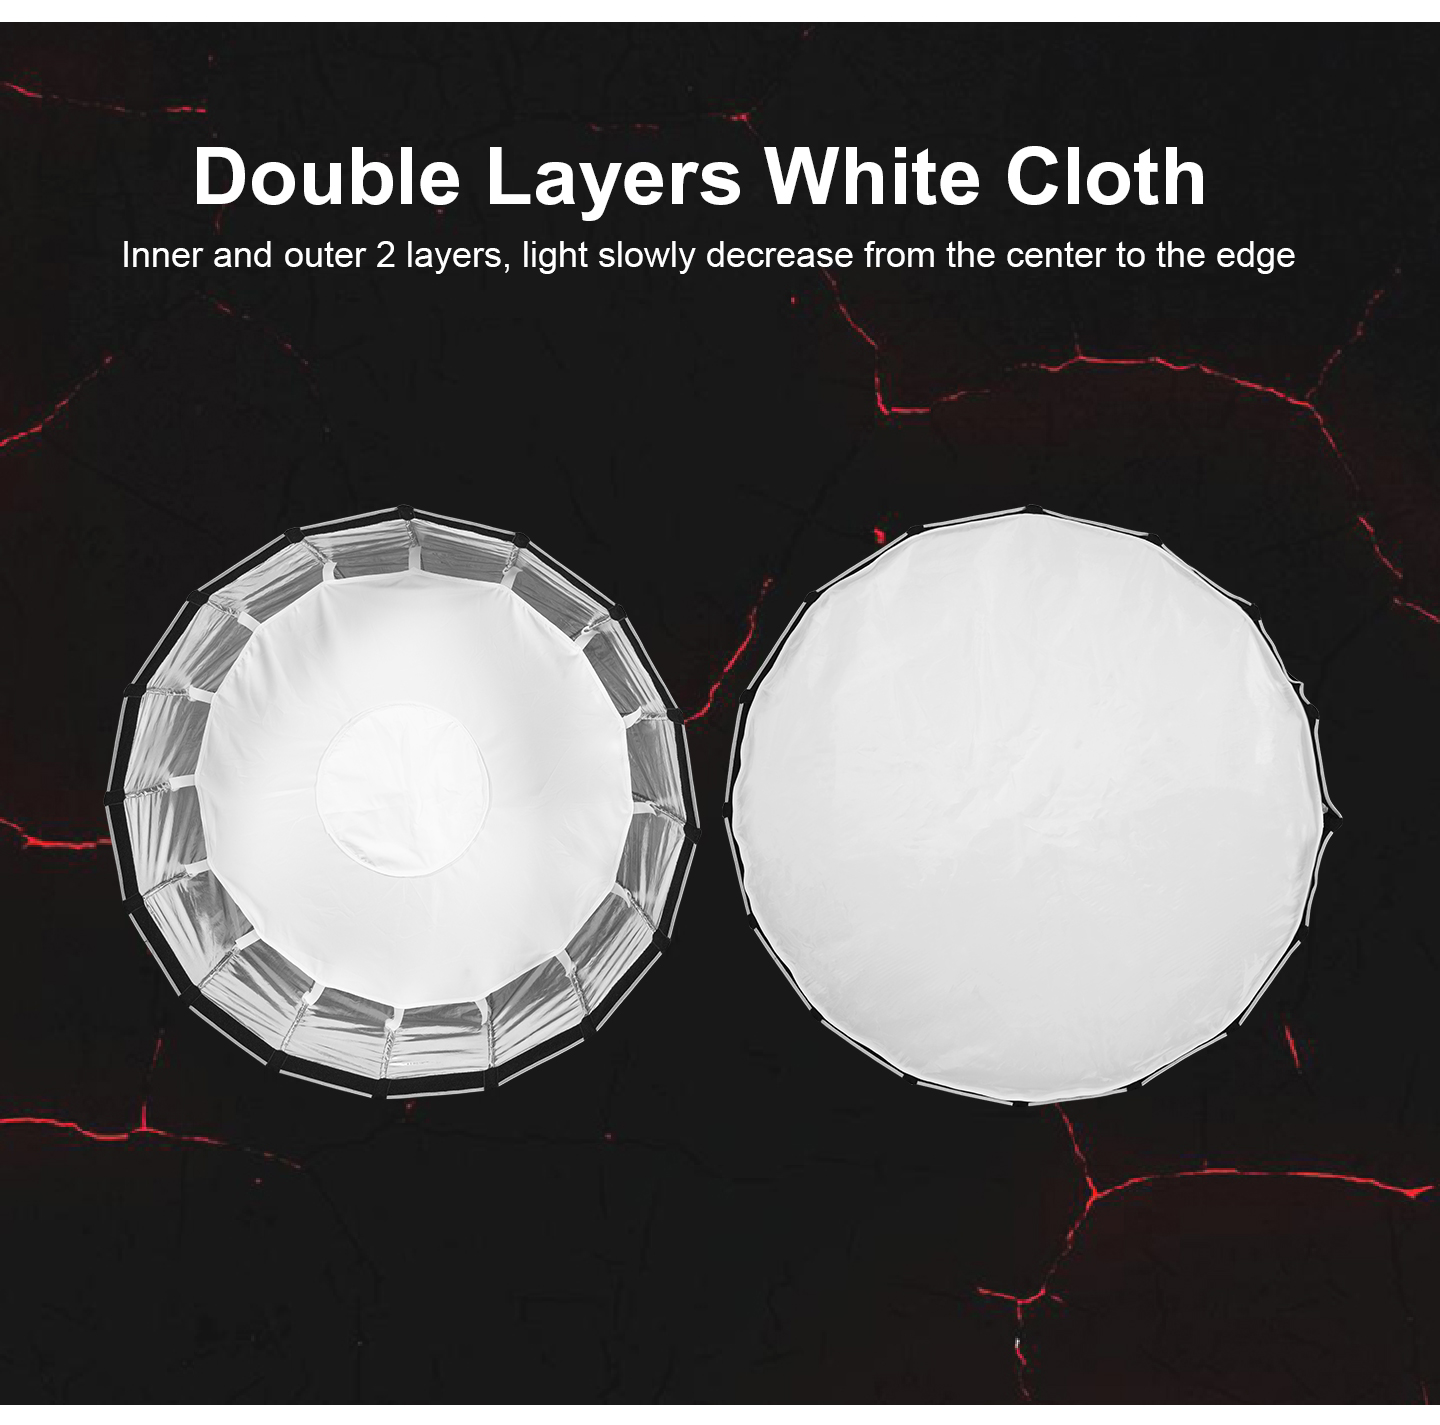 Doublle Layers White Cloth